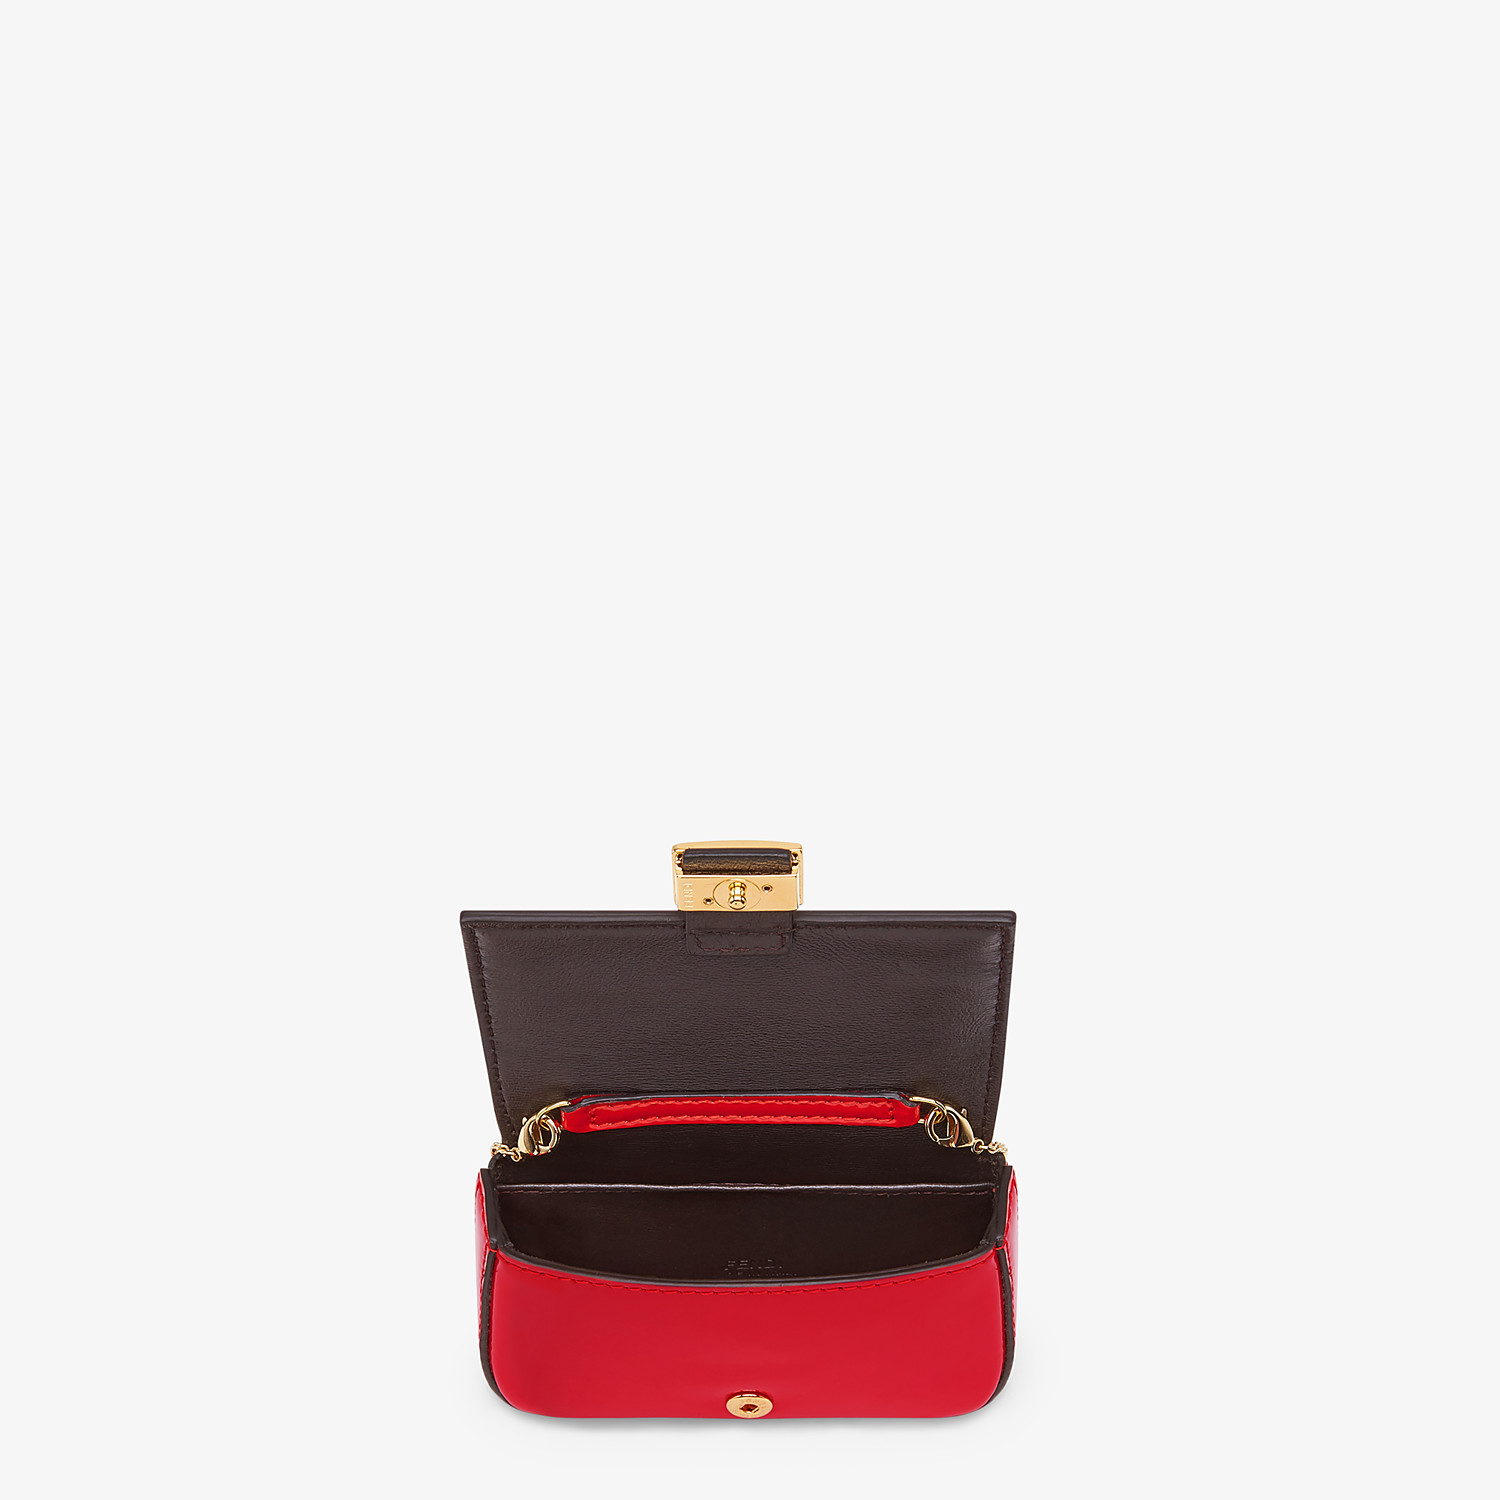 FENDI NANO BAGUETTE CHARM - Red patent leather charm - view 5 detail